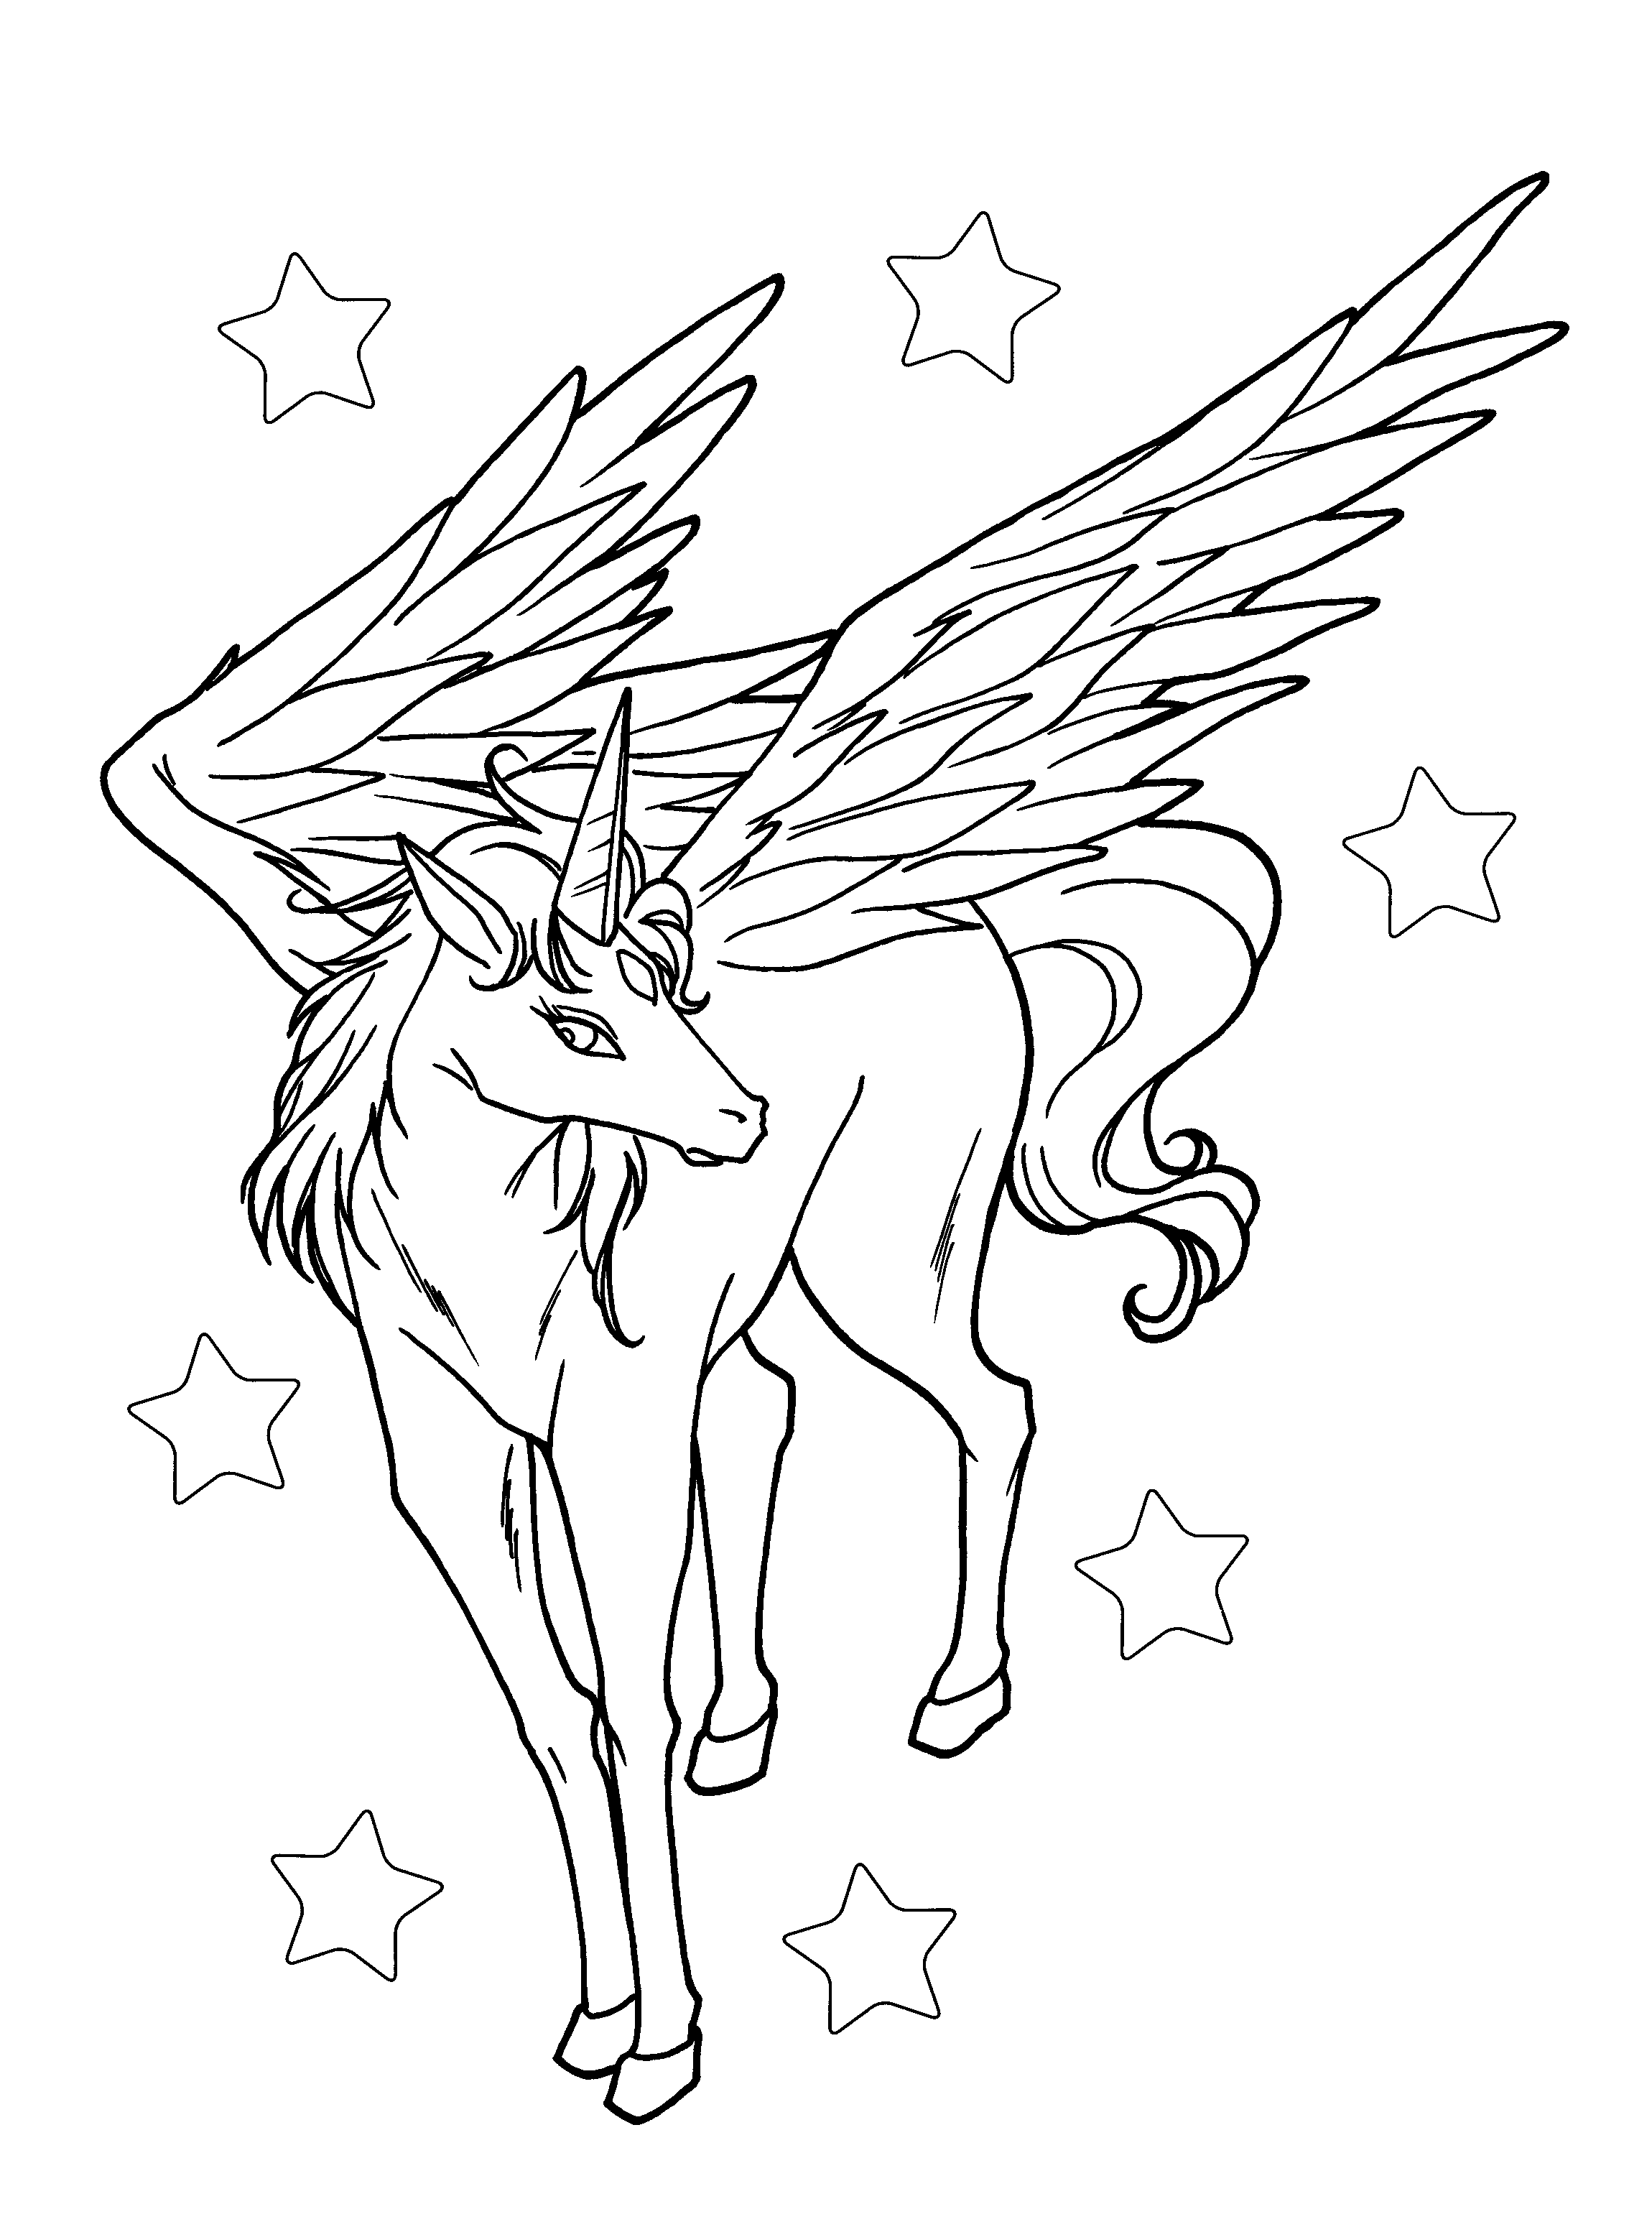 Pegasus Is Staring With Beautiful Eyes Coloring Pages For Kids Dlg Printable Pegasus C Star Coloring Pages Unicorn Coloring Pages Sailor Moon Coloring Pages